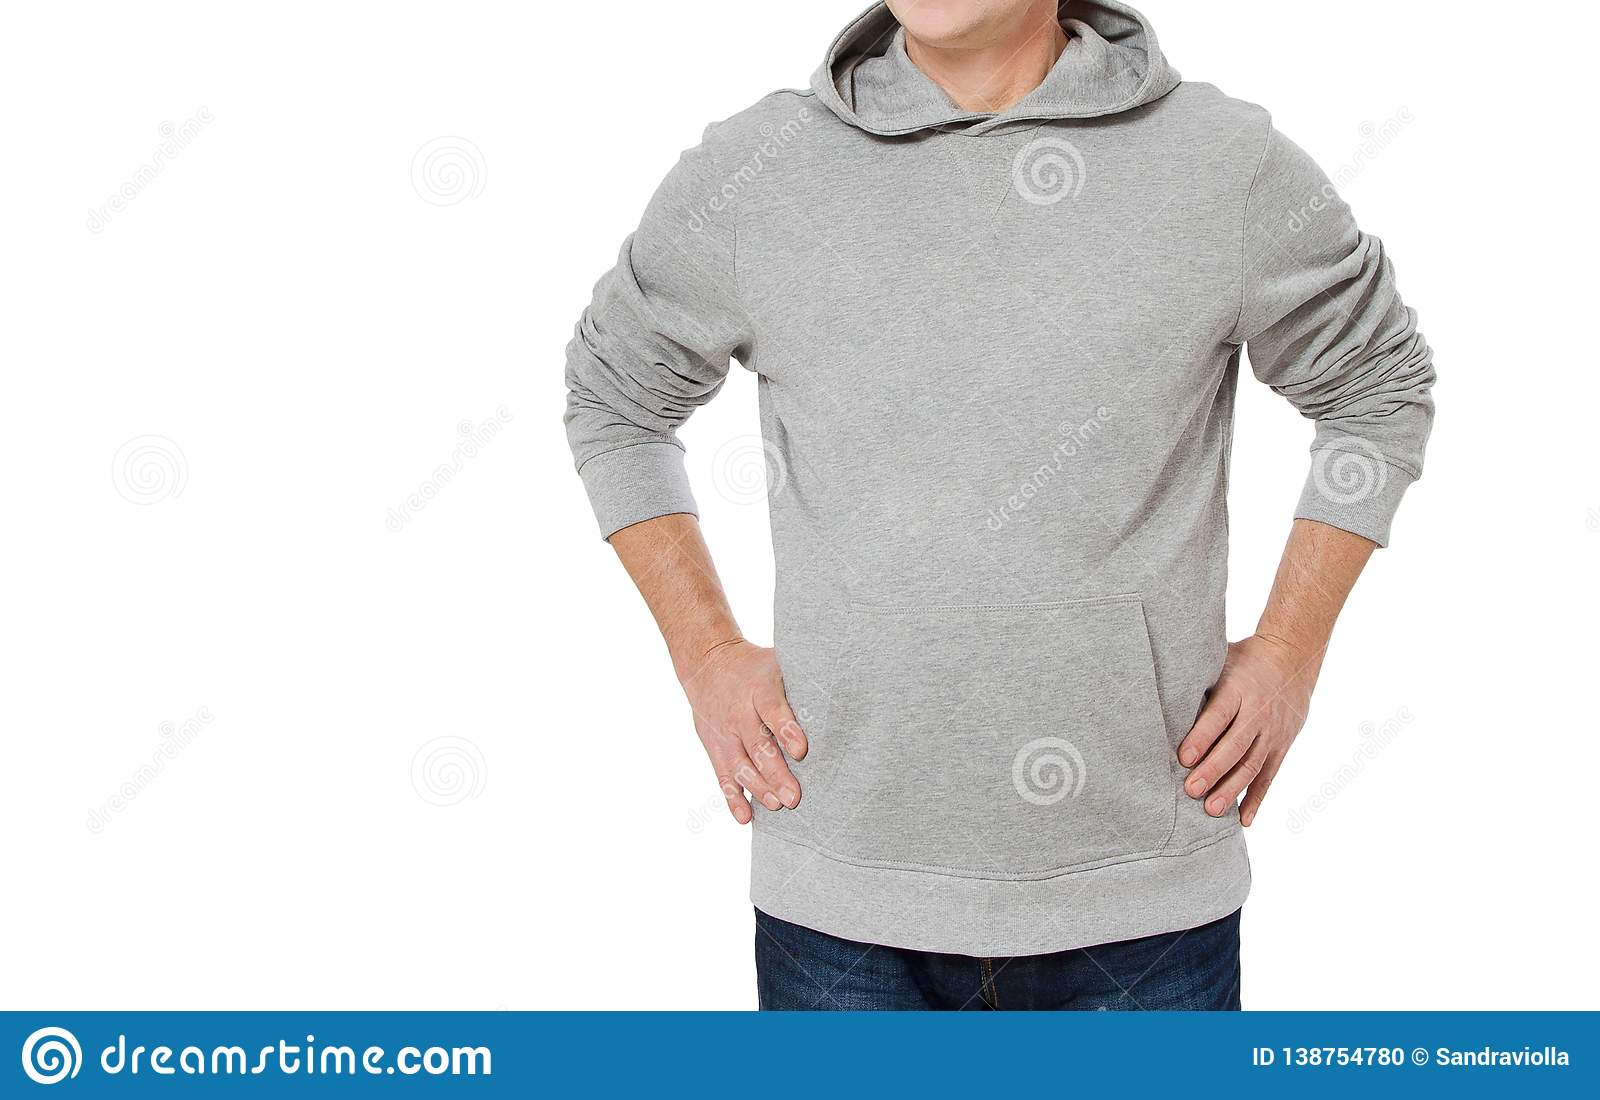 Man in gray sweatshirt template isolated. Male sweatshirts set with mockup and copy space. Hoody design. Hoodie front cropped